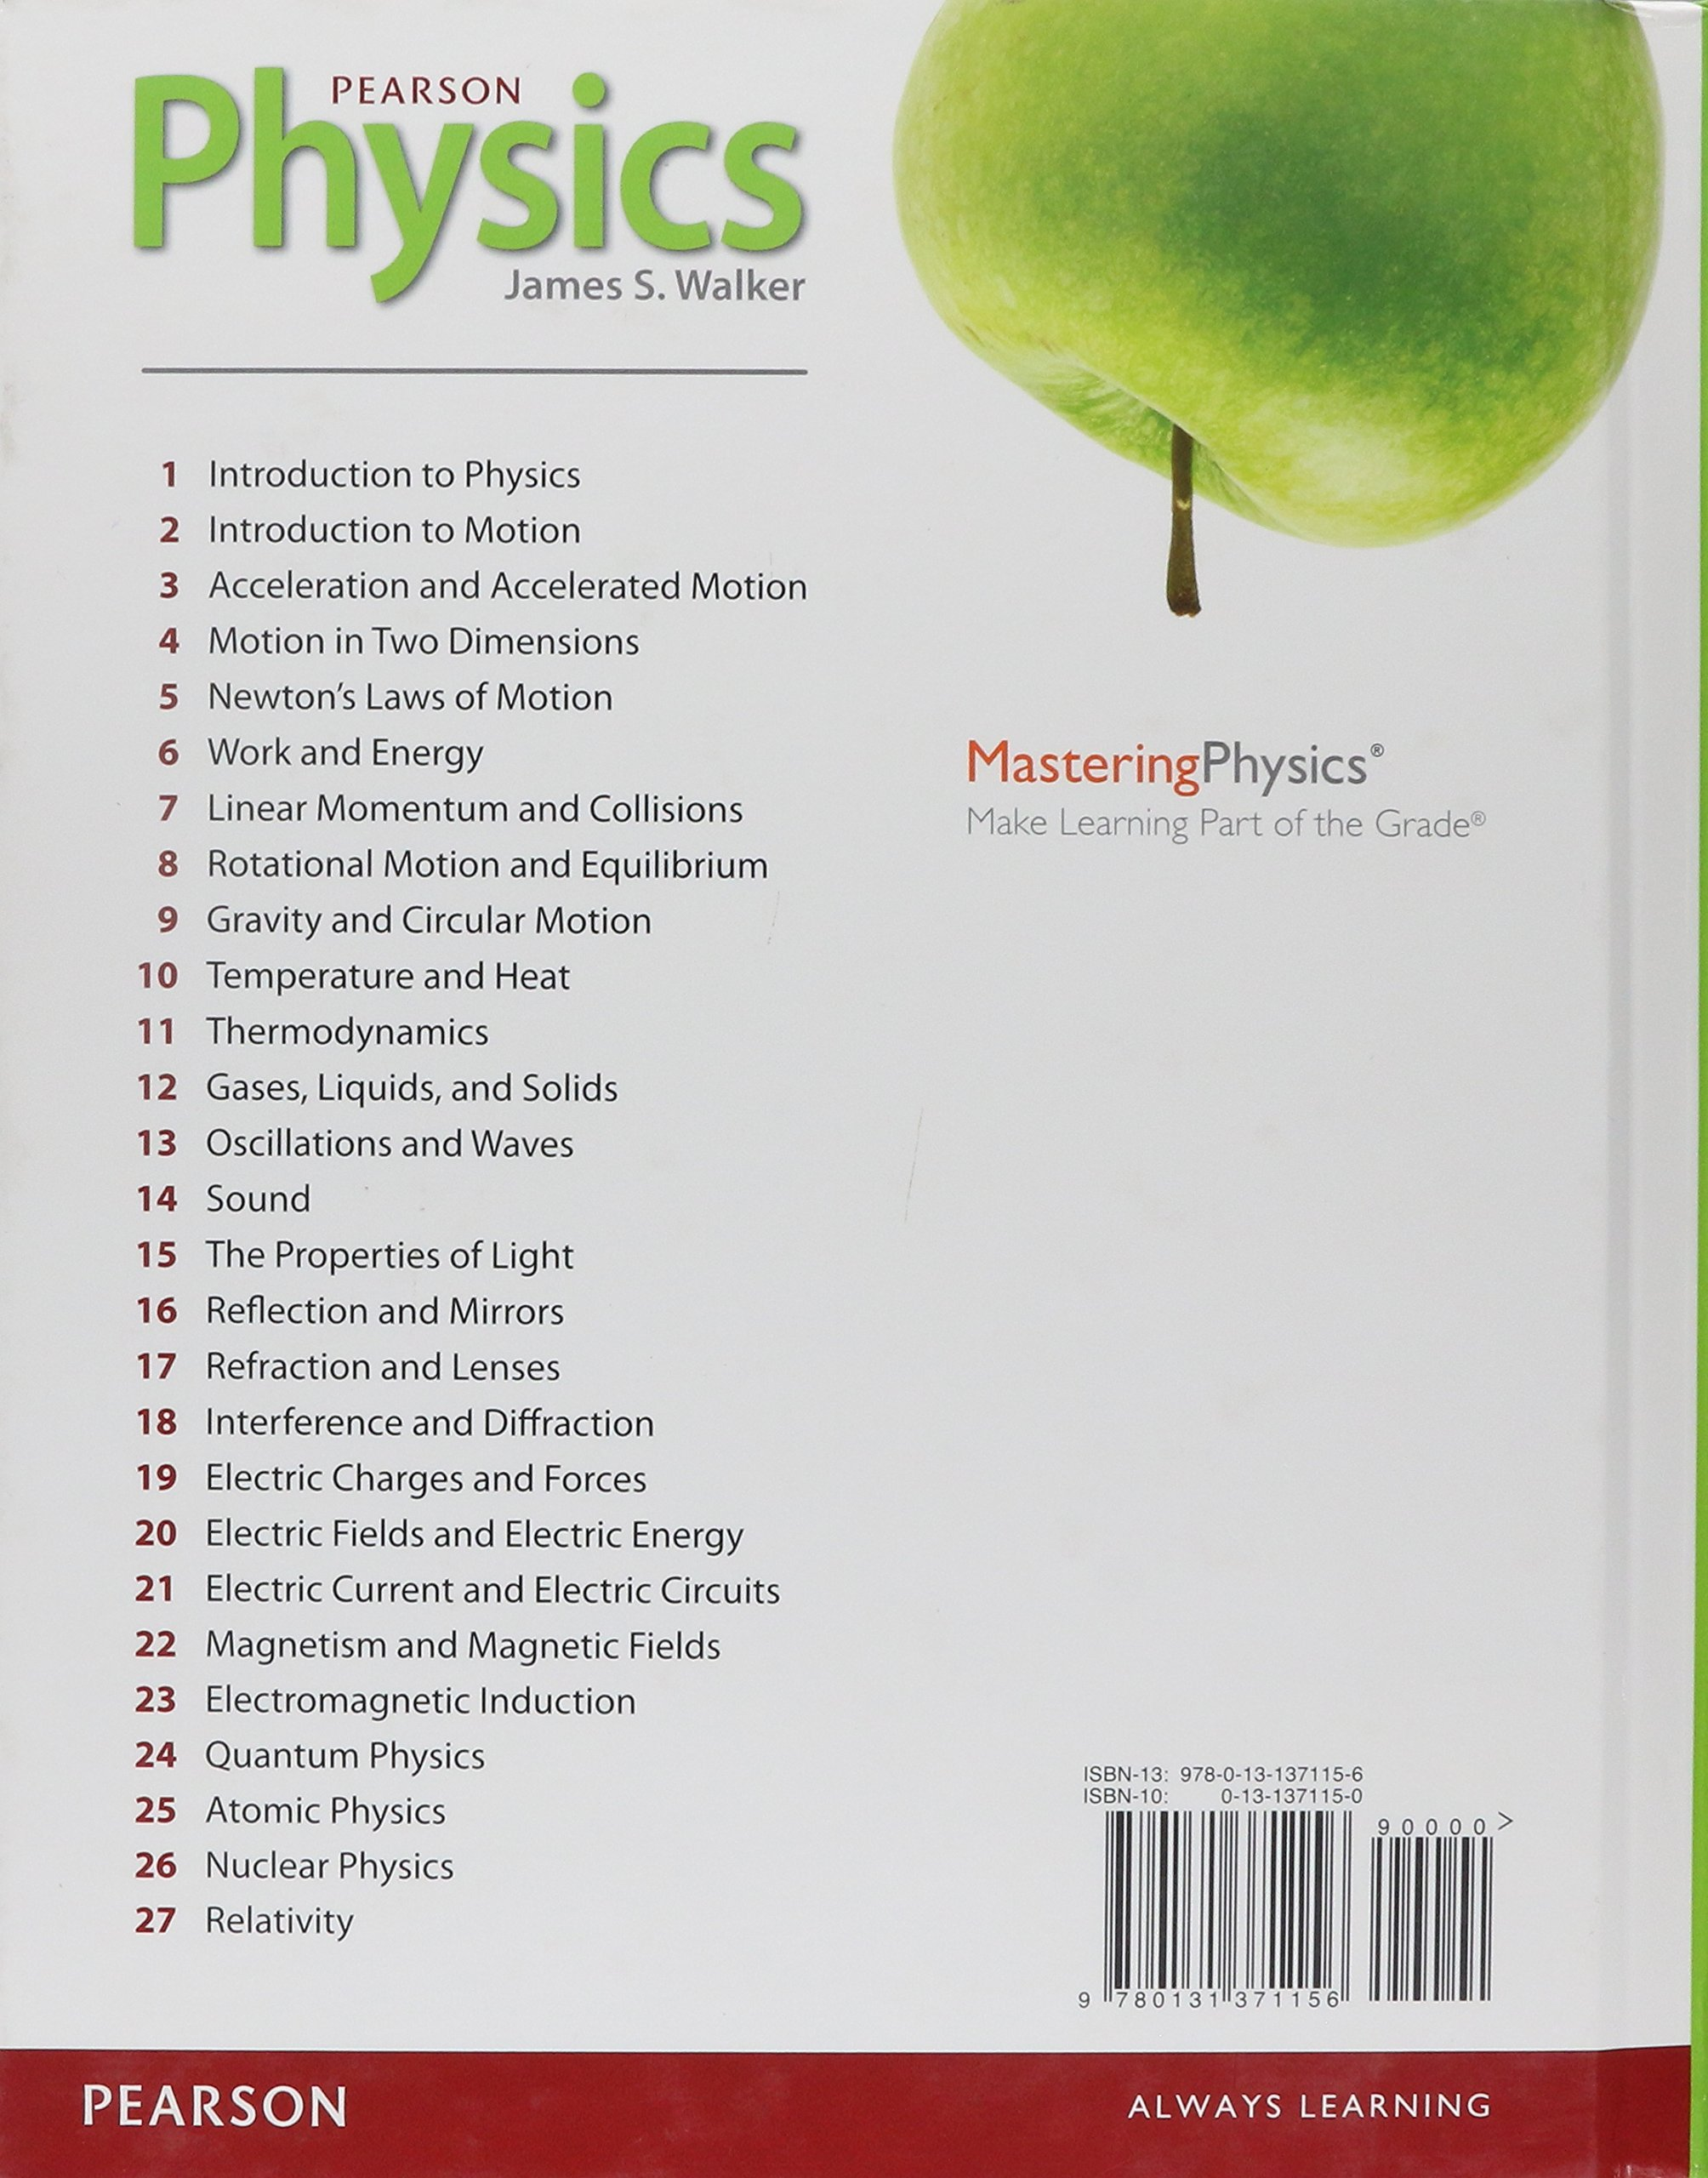 Pearson Physics 20 Textbook Pdf